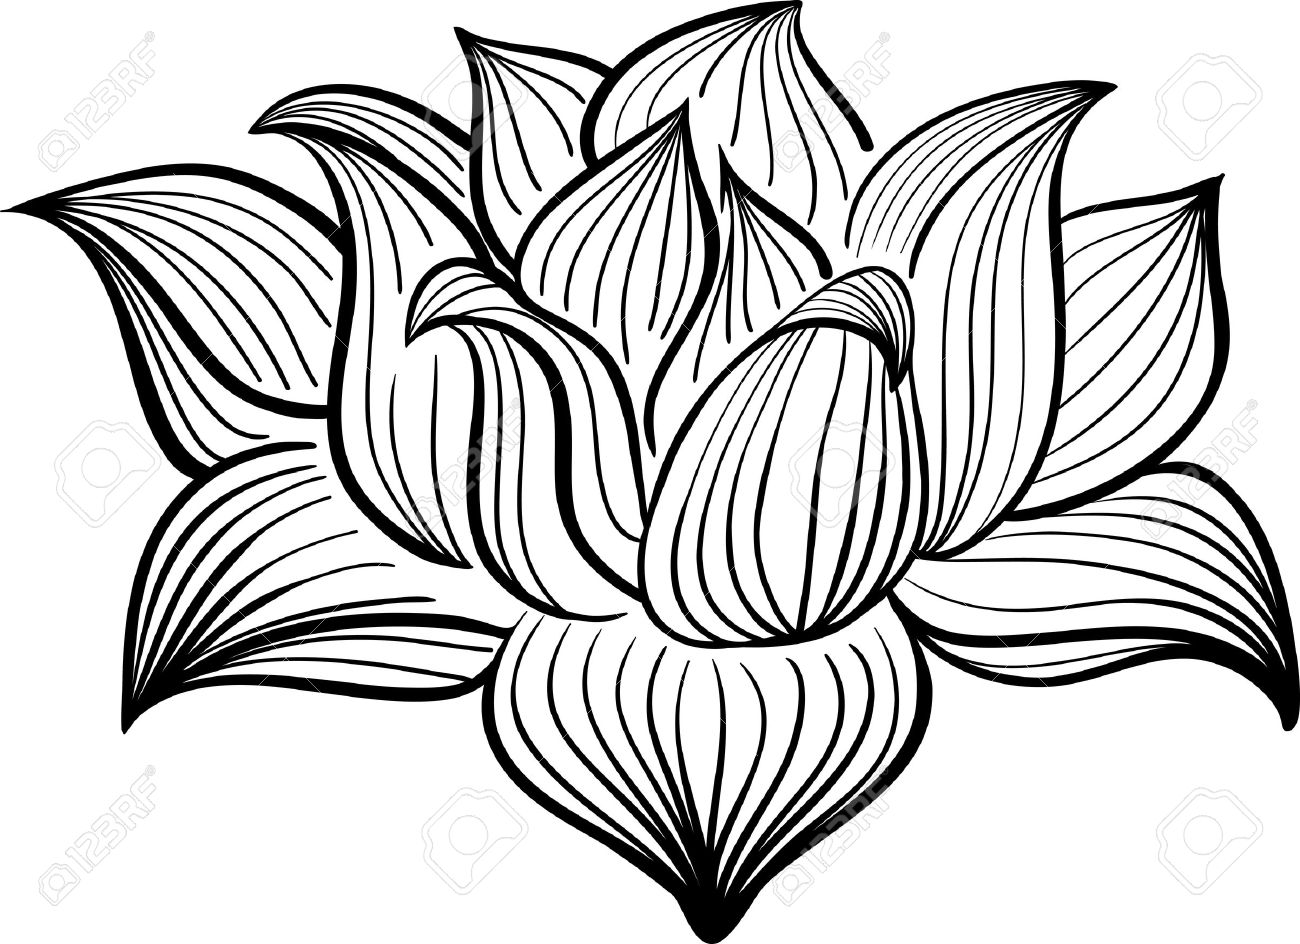 1300x944 Vector Black And White Lotus Flower Drawn In Sketch Style. Line